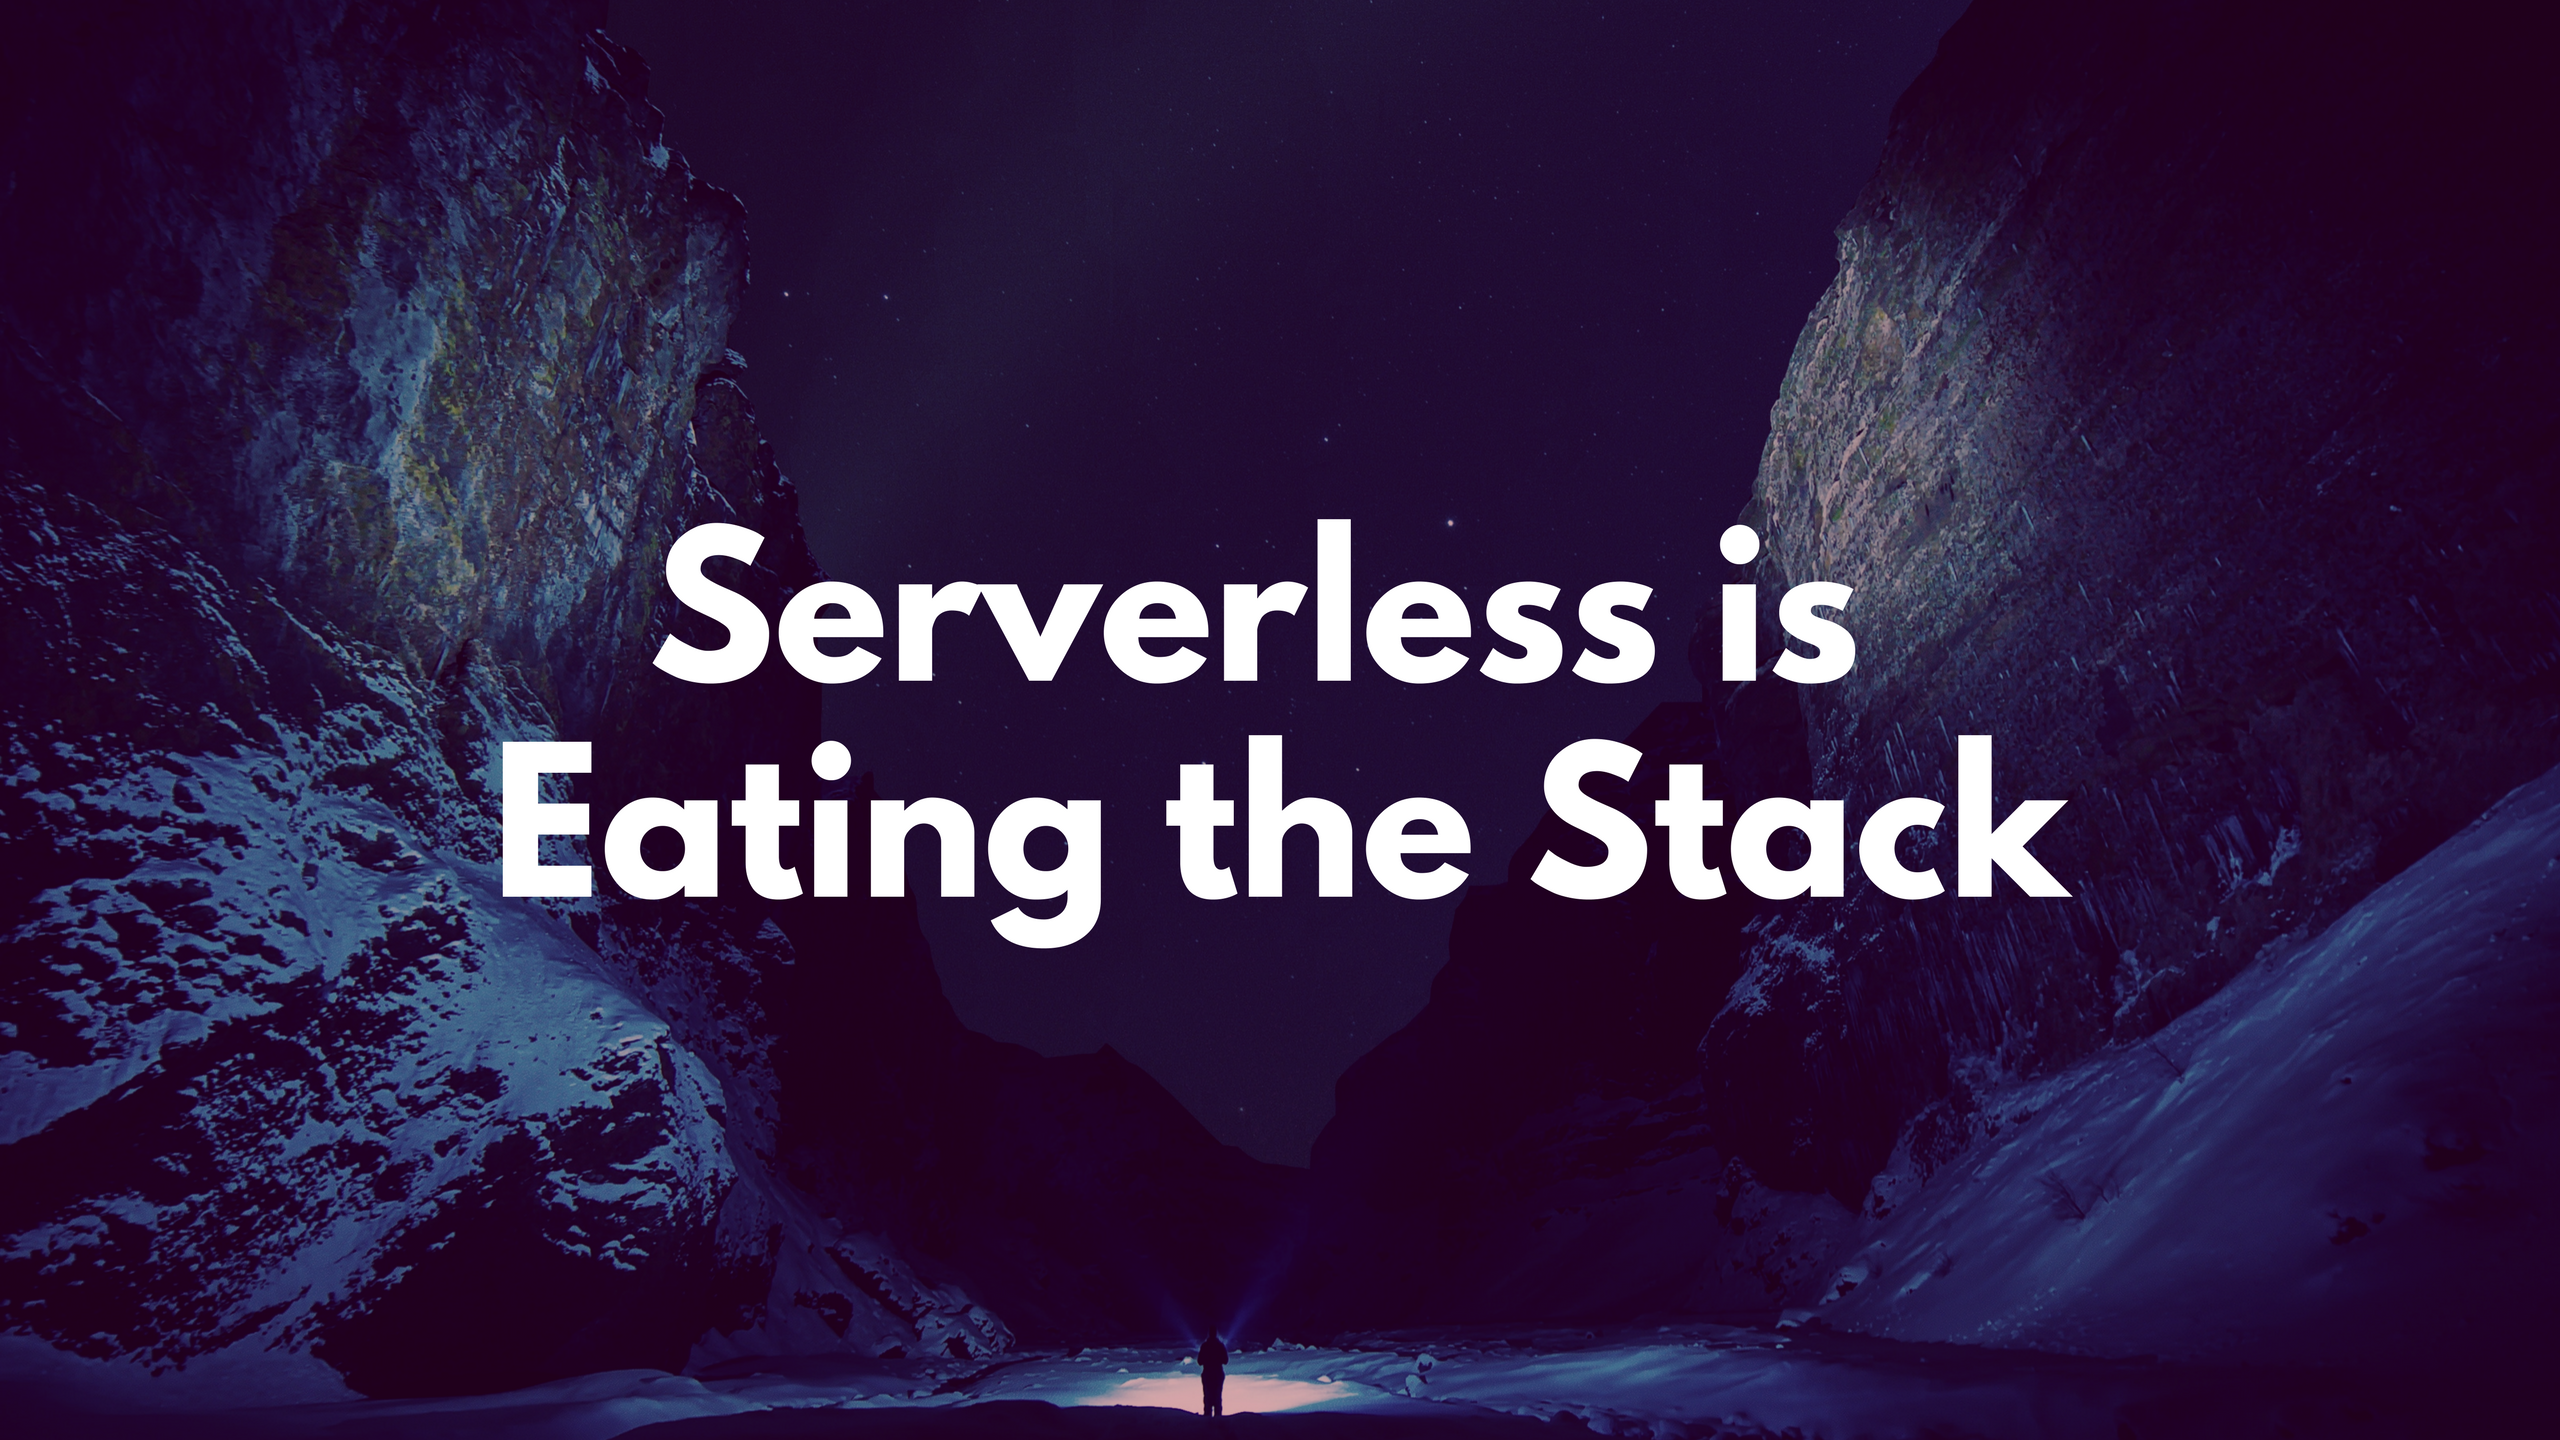 Serverless is eating the stack and people are freaking out — as they